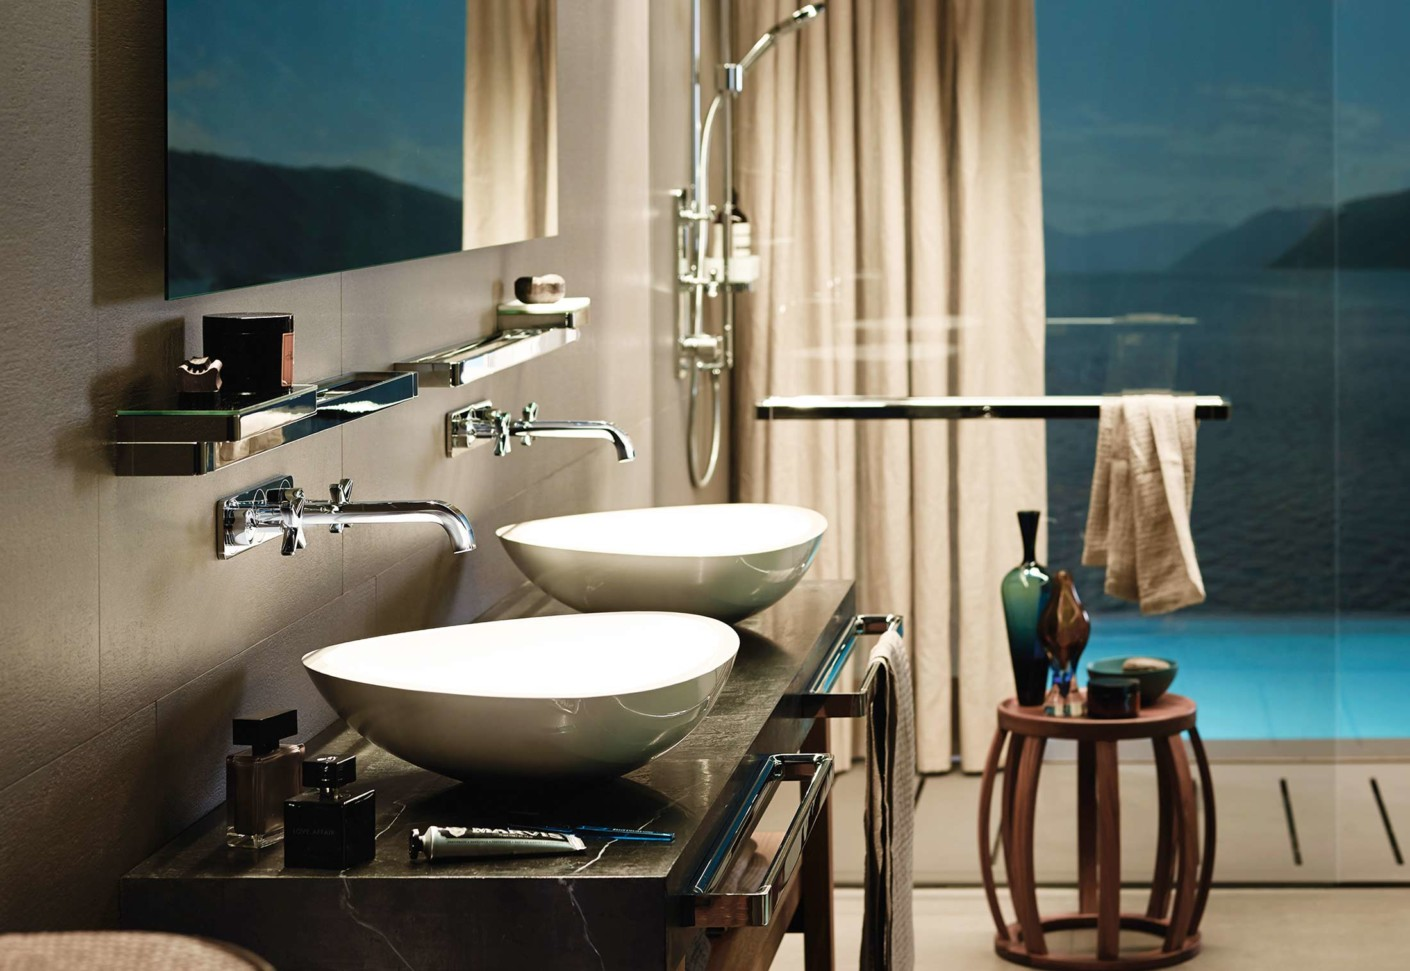 axor citterio e 3 hole basin mixer for concealed installation wall mounted by axor stylepark. Black Bedroom Furniture Sets. Home Design Ideas